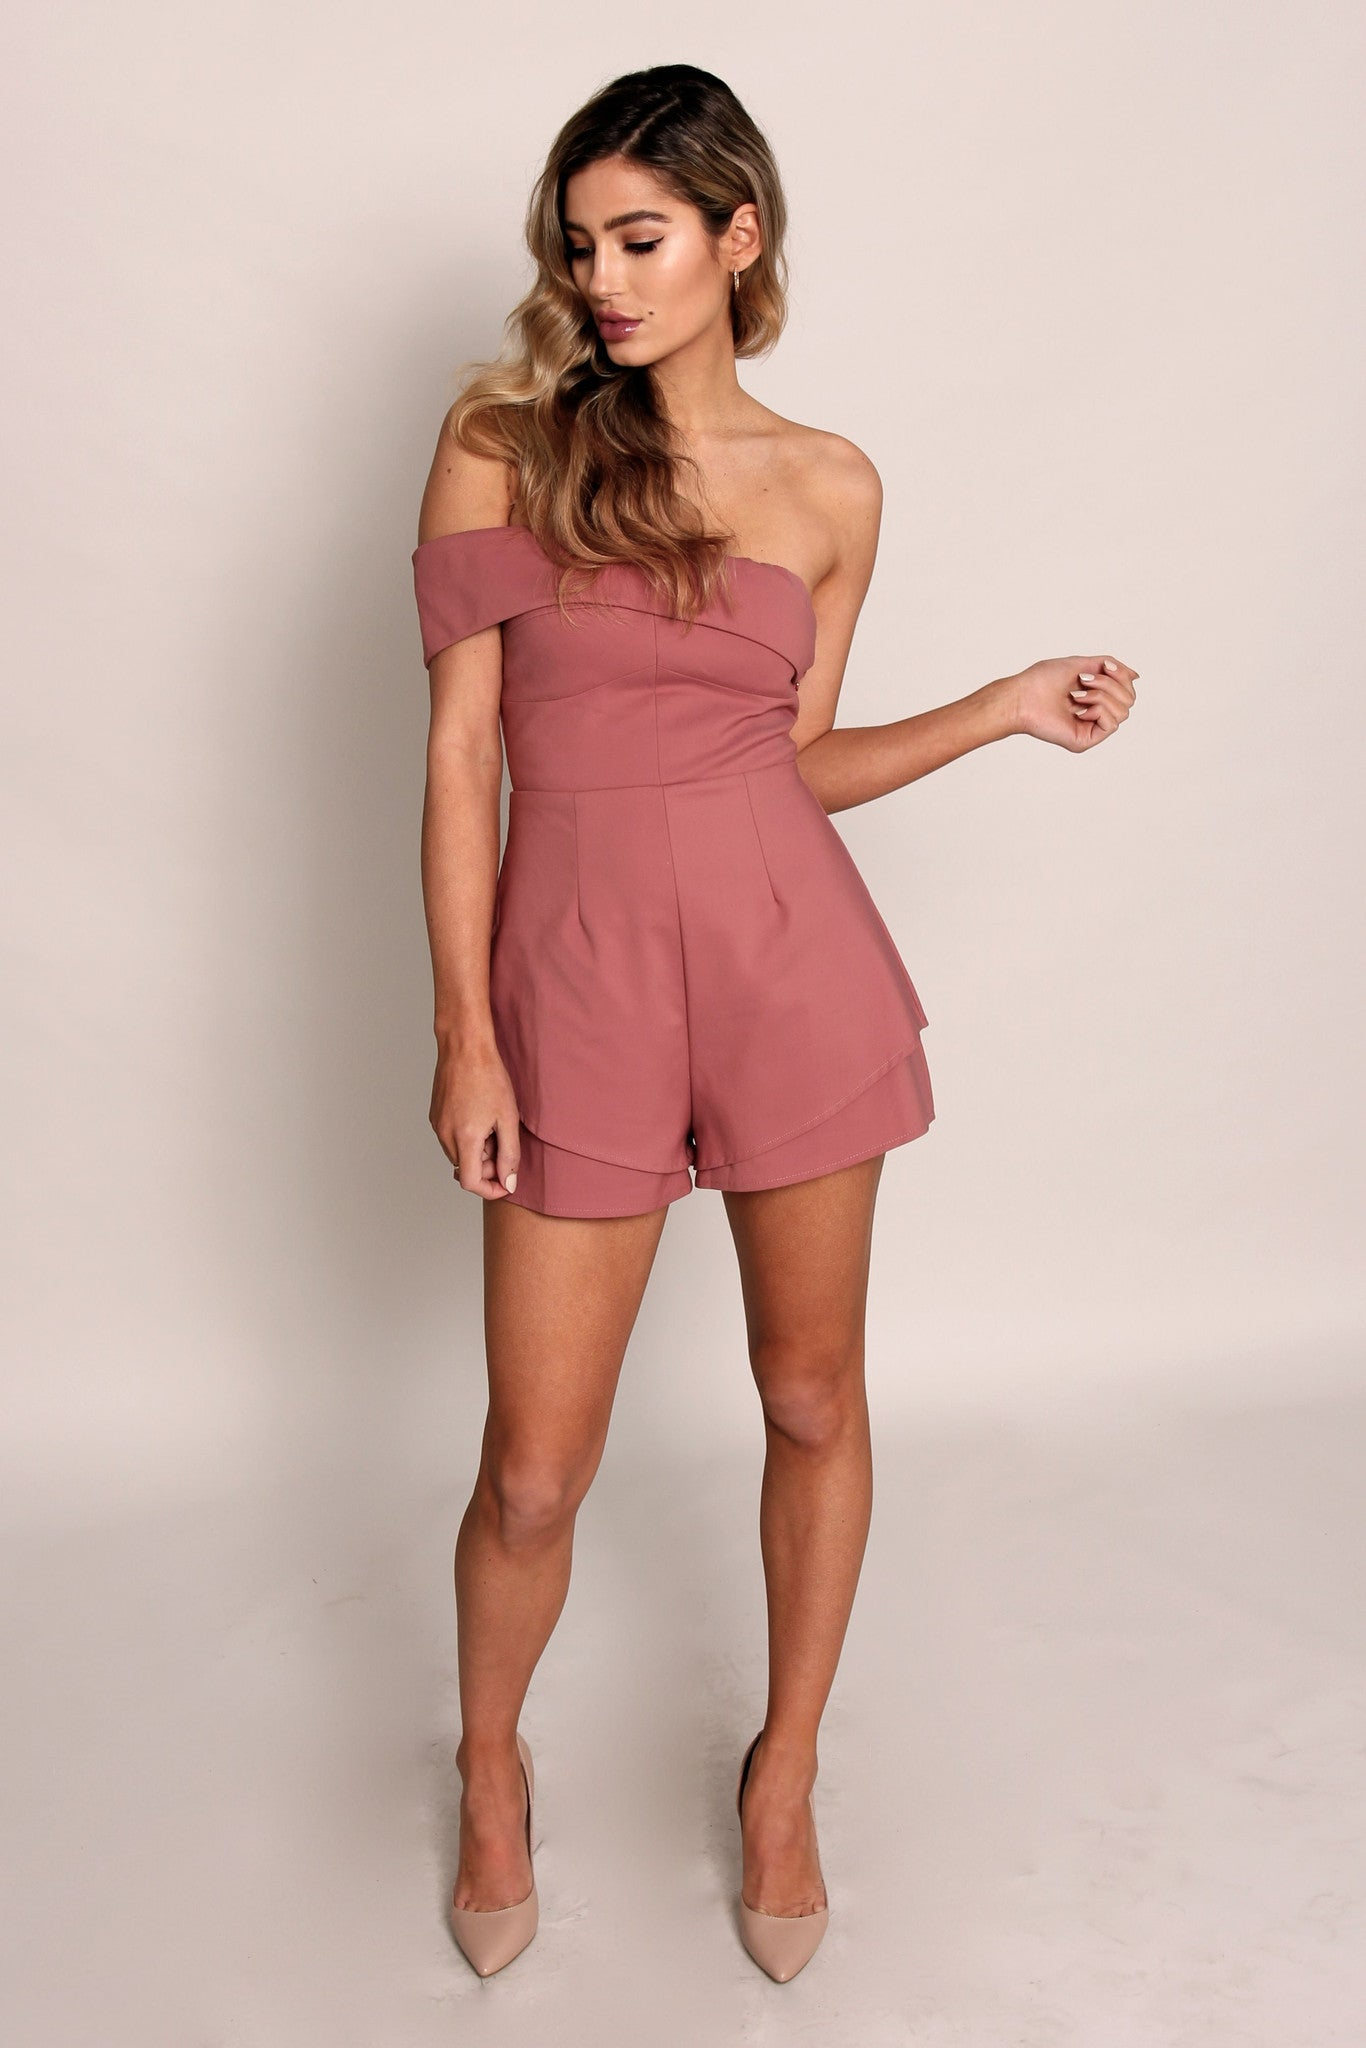 Run Alone Playsuit - Rose Pink